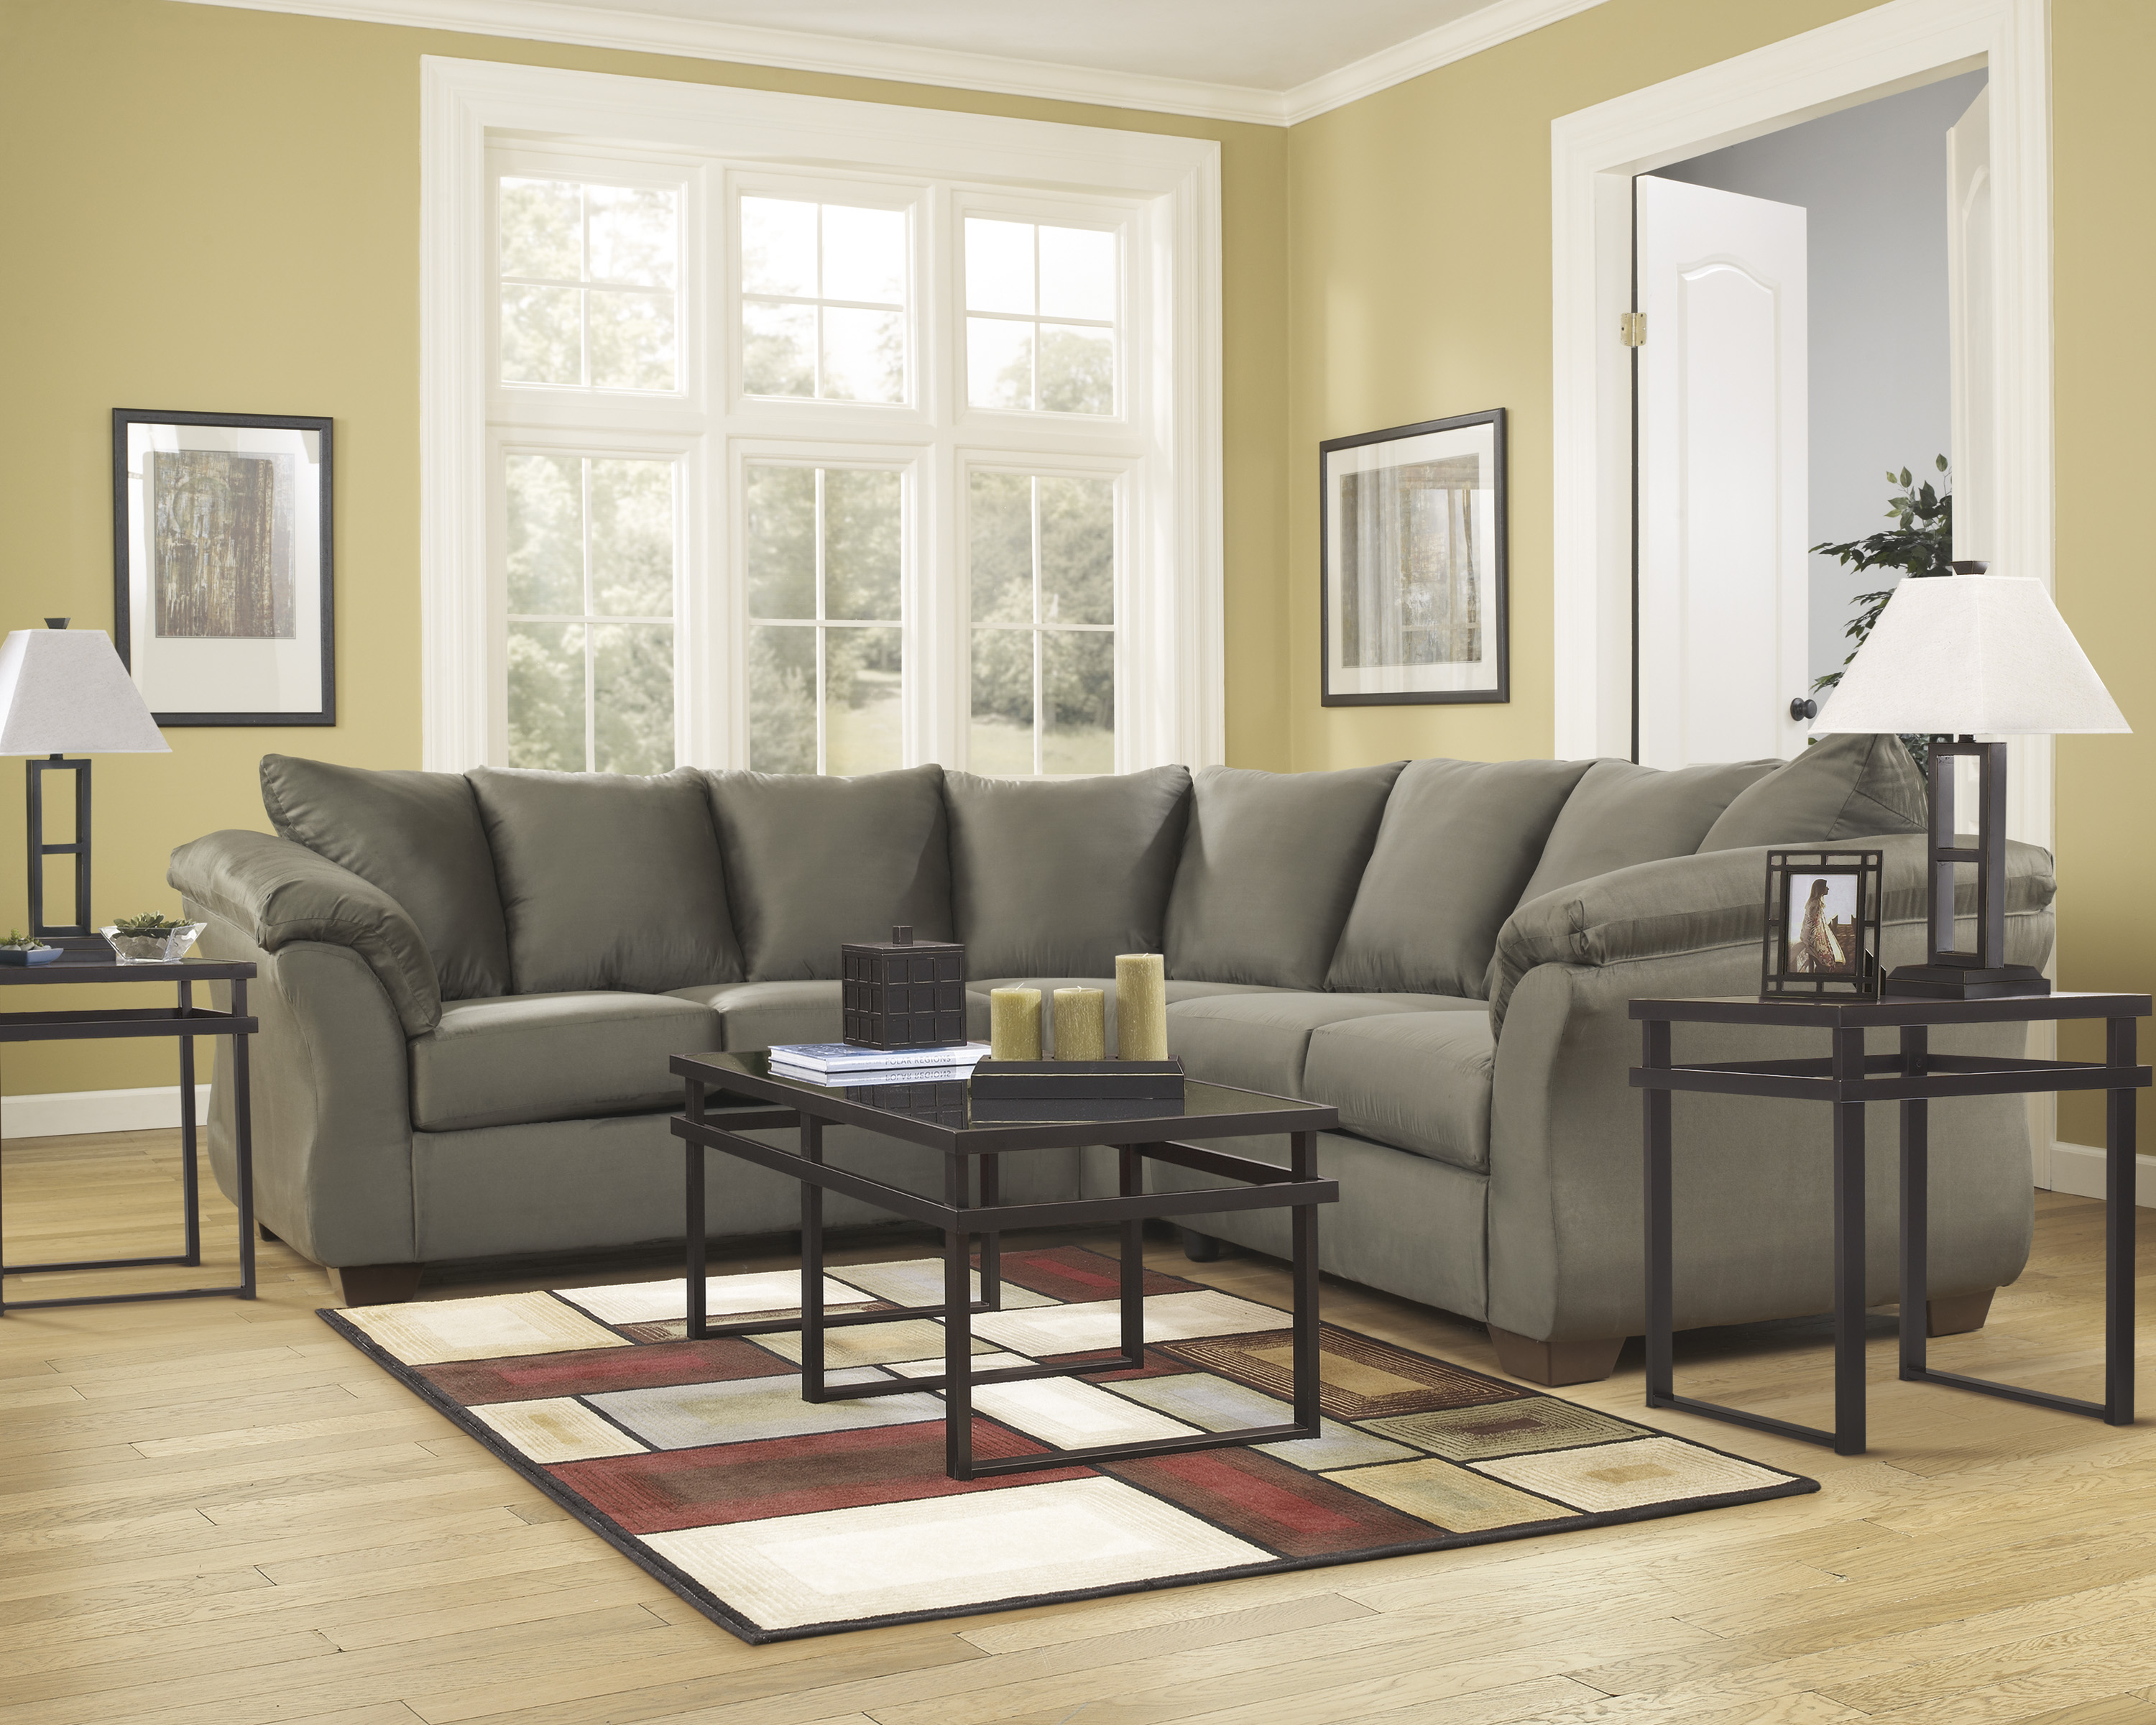 As 75003 S throughout 11 Genius Ideas How to Upgrade Living Room Sets Raleigh NC